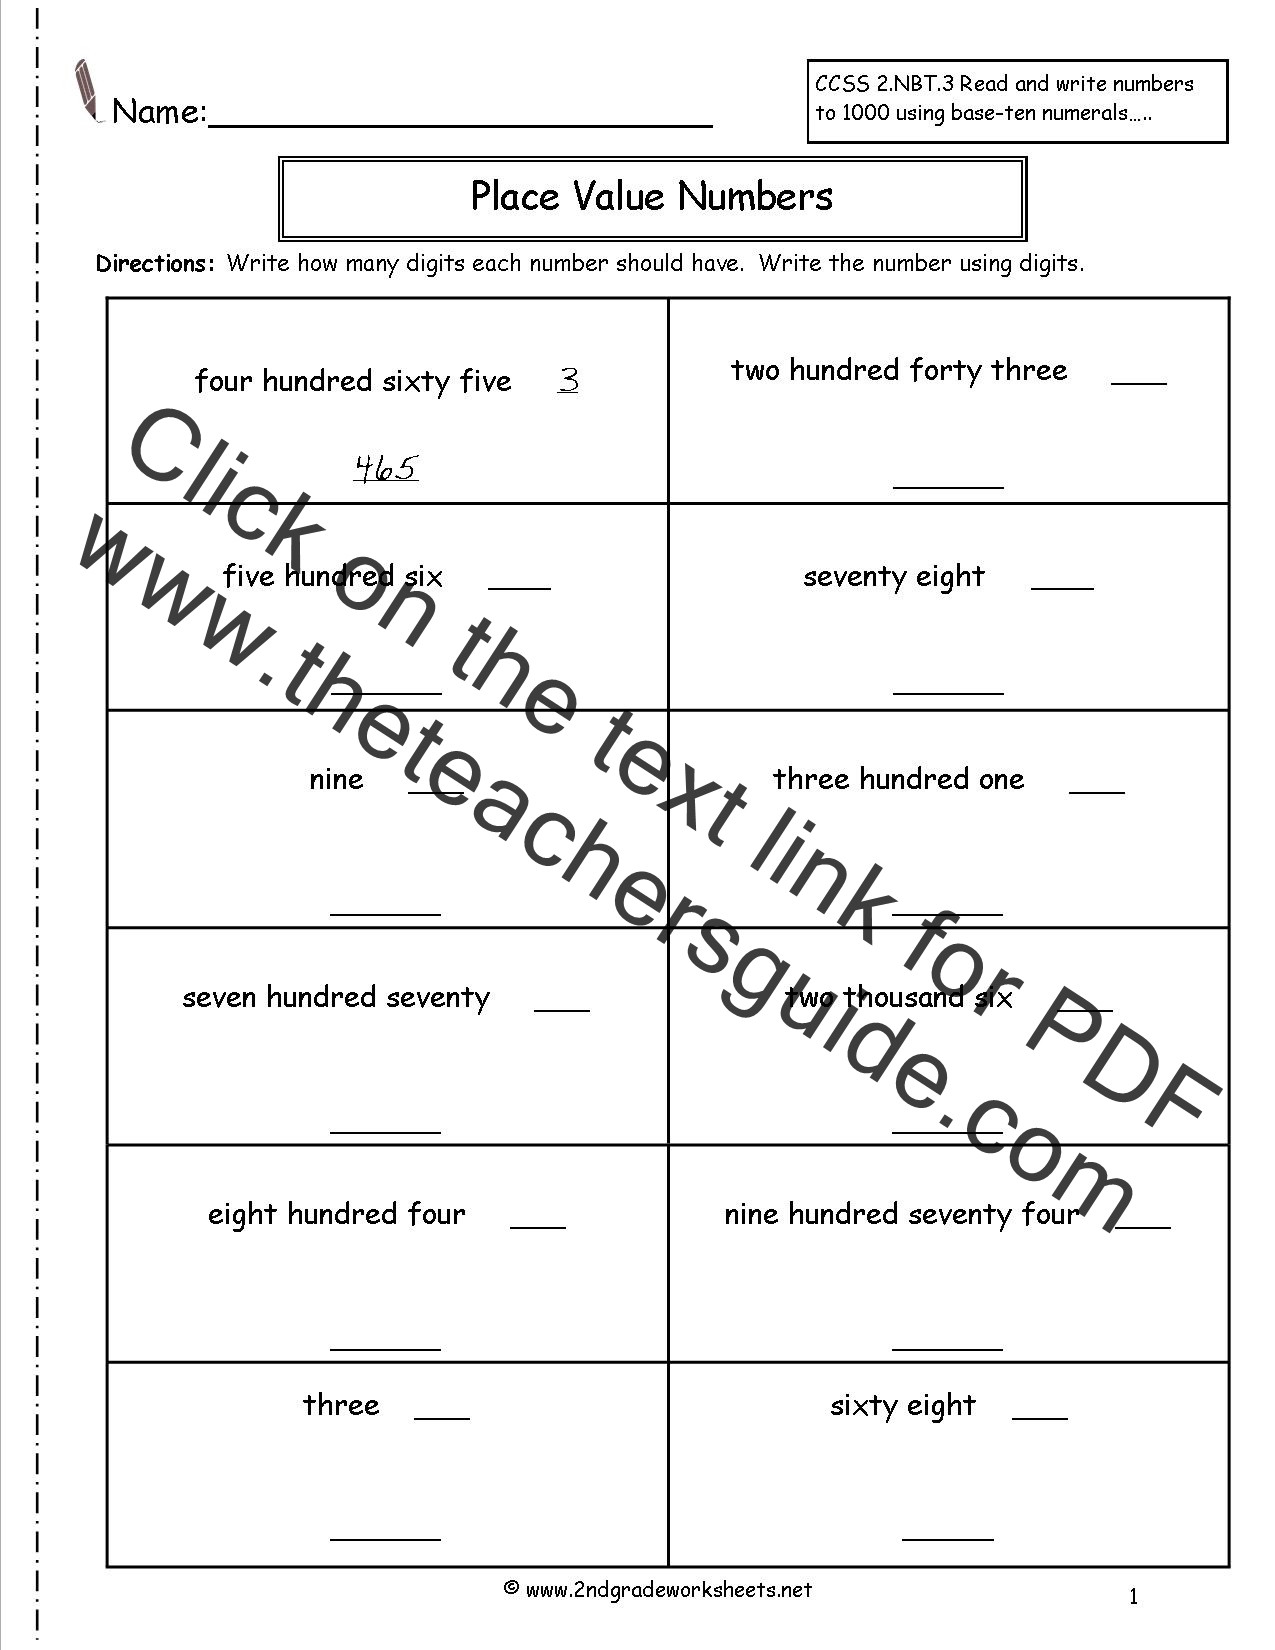 Place Value 2nd Grade Worksheet Place Value Es Worksheets